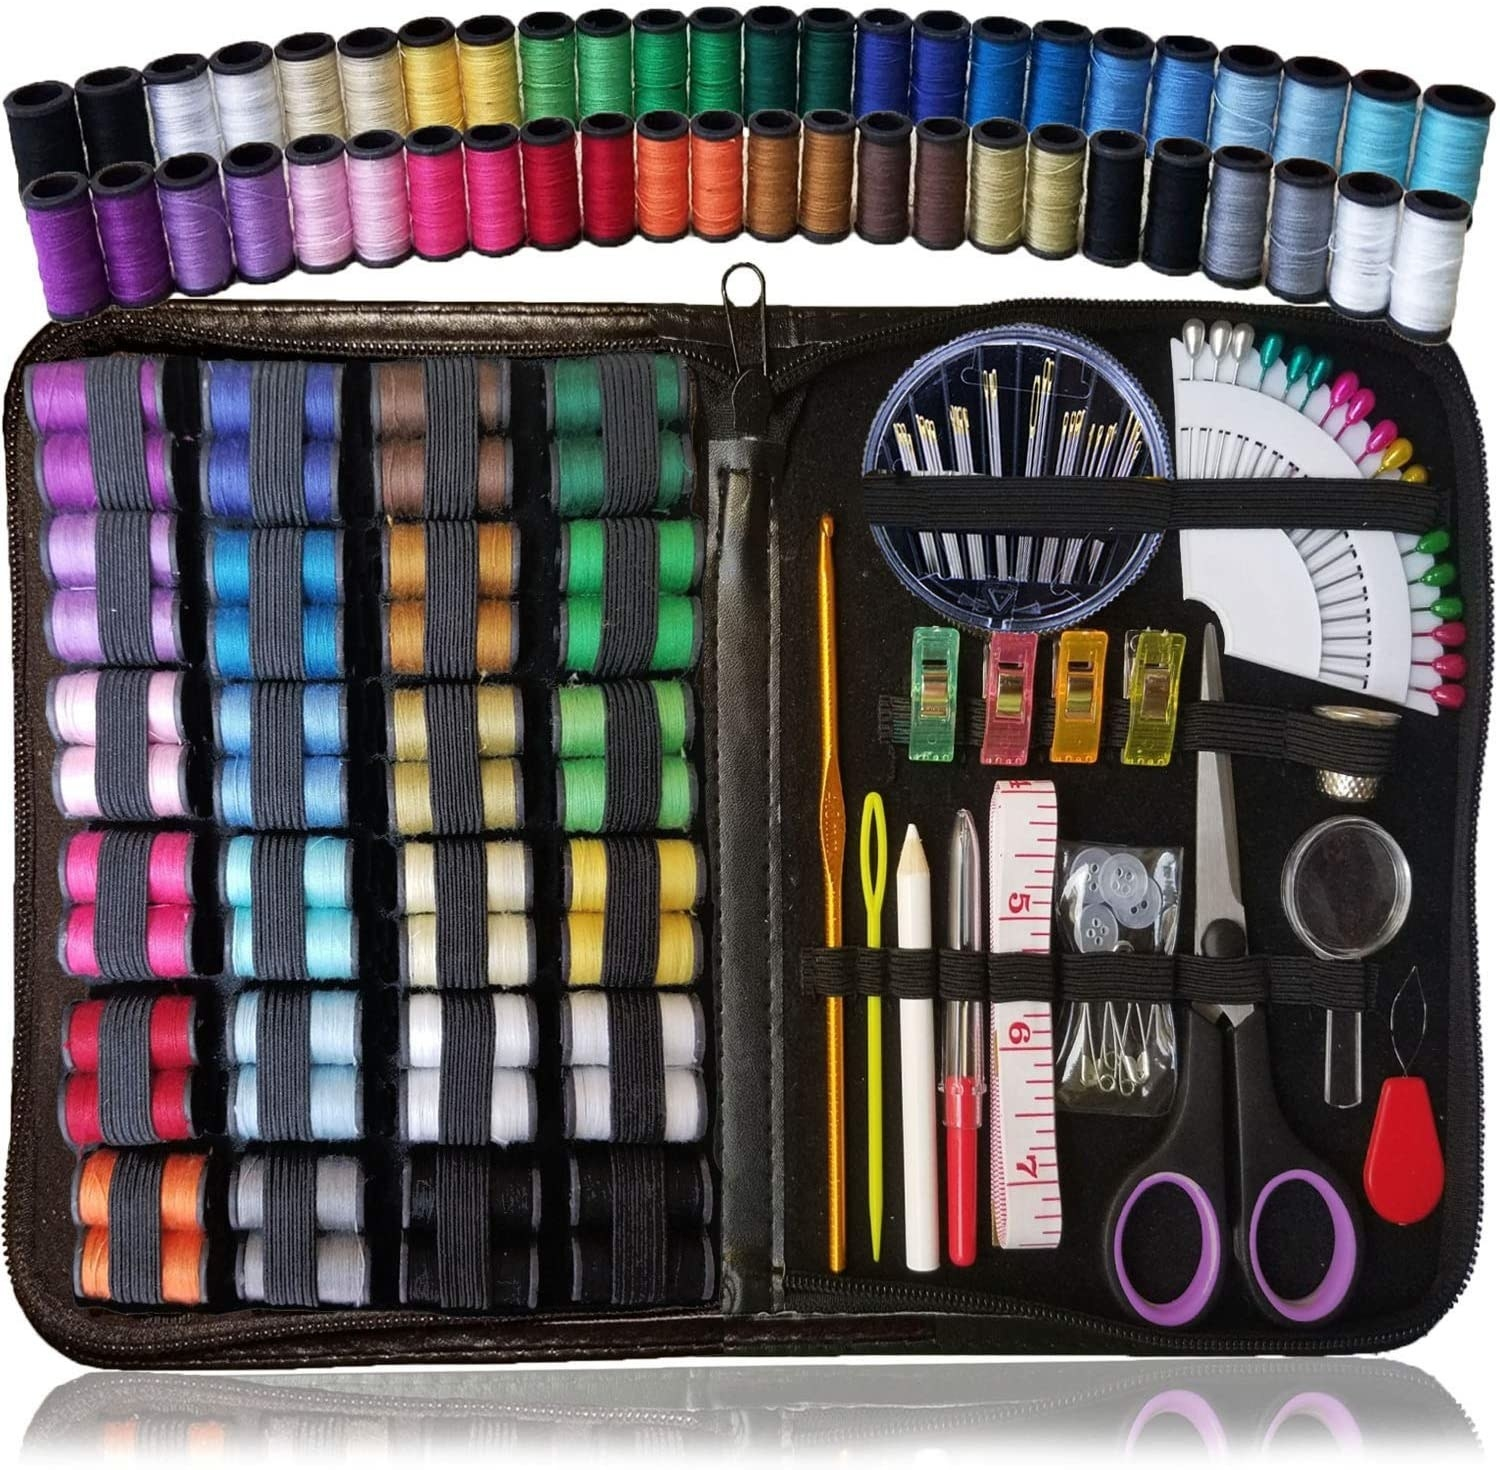 The sewing kit is laid open to show all the threads, pins, scissors, needles, and clips included